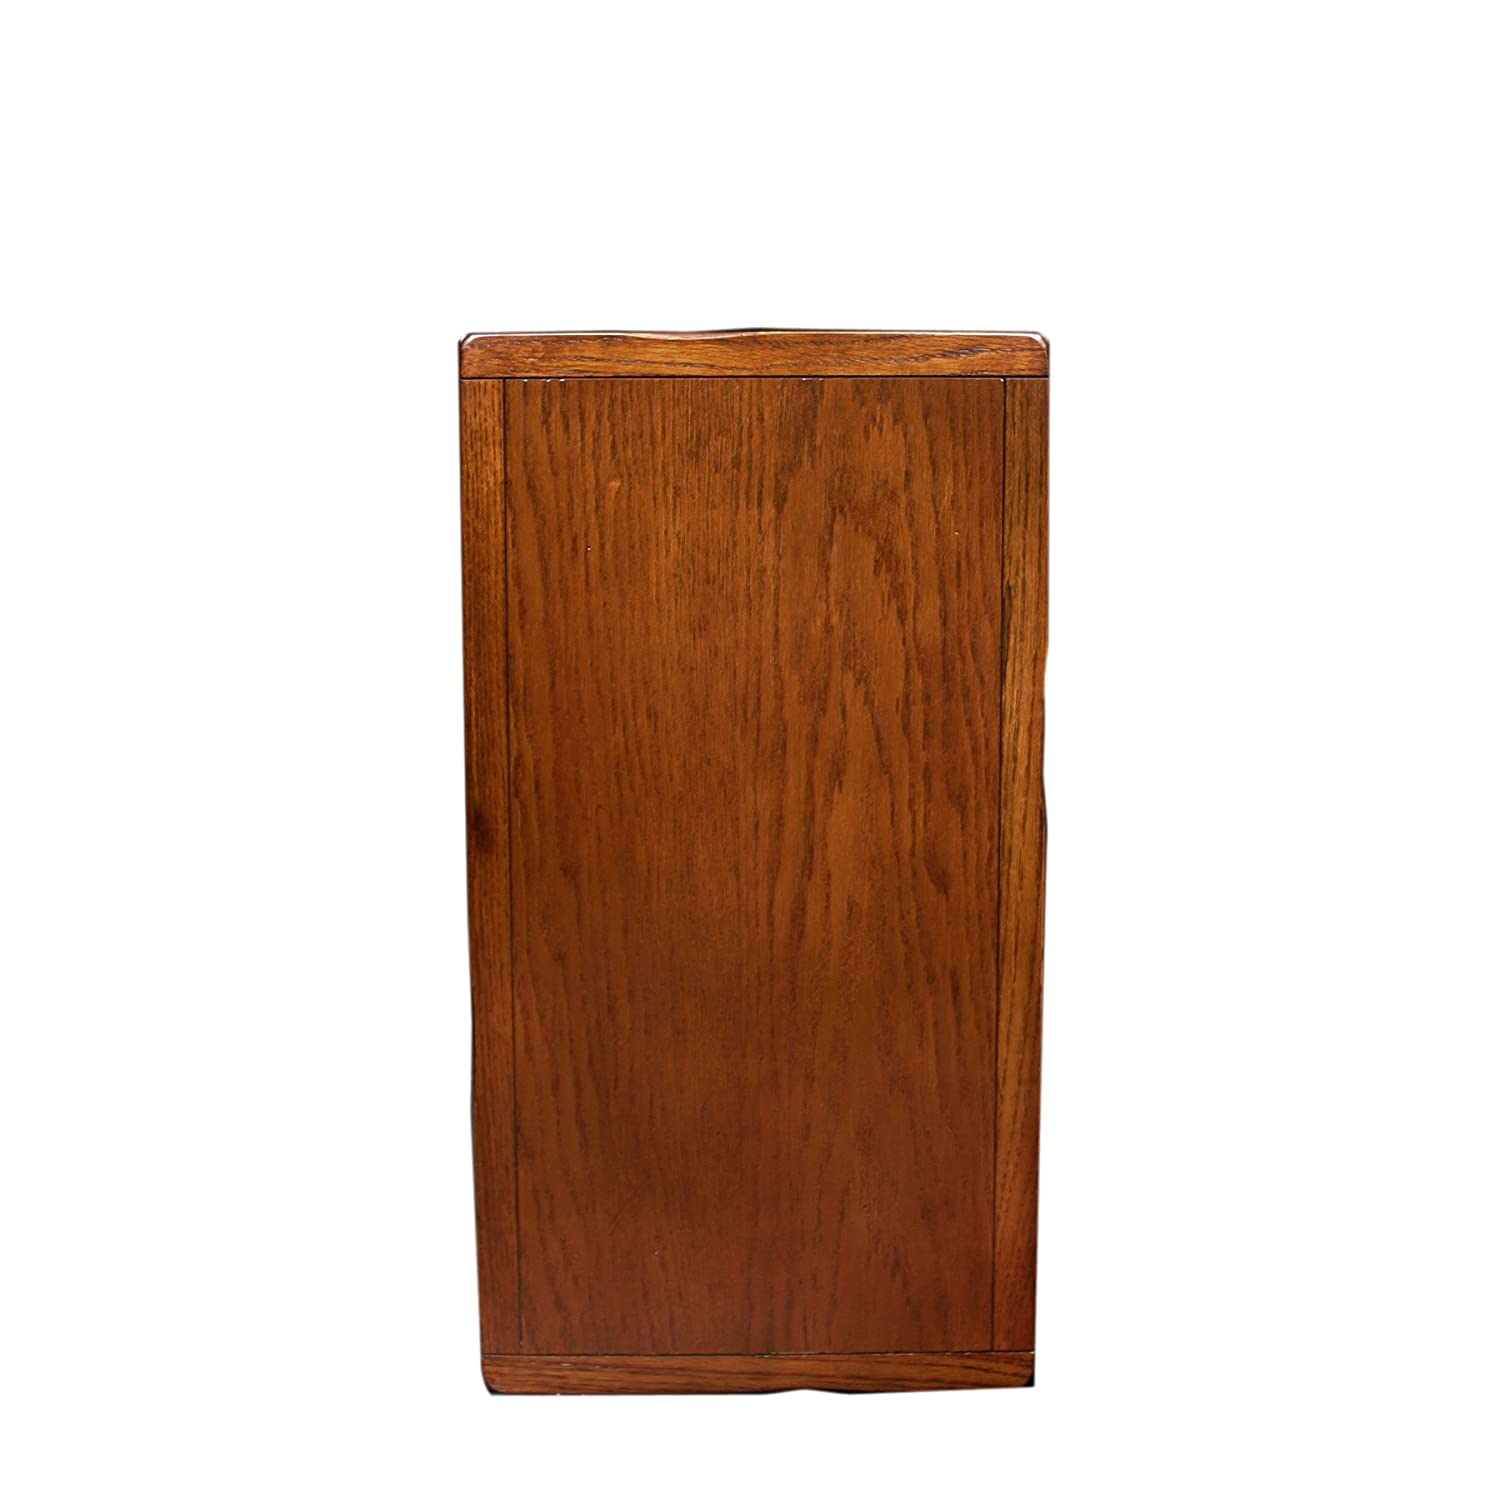 Amazon.com: Leick 10060 Rustic Oak Chairside End Table: Kitchen U0026 Dining